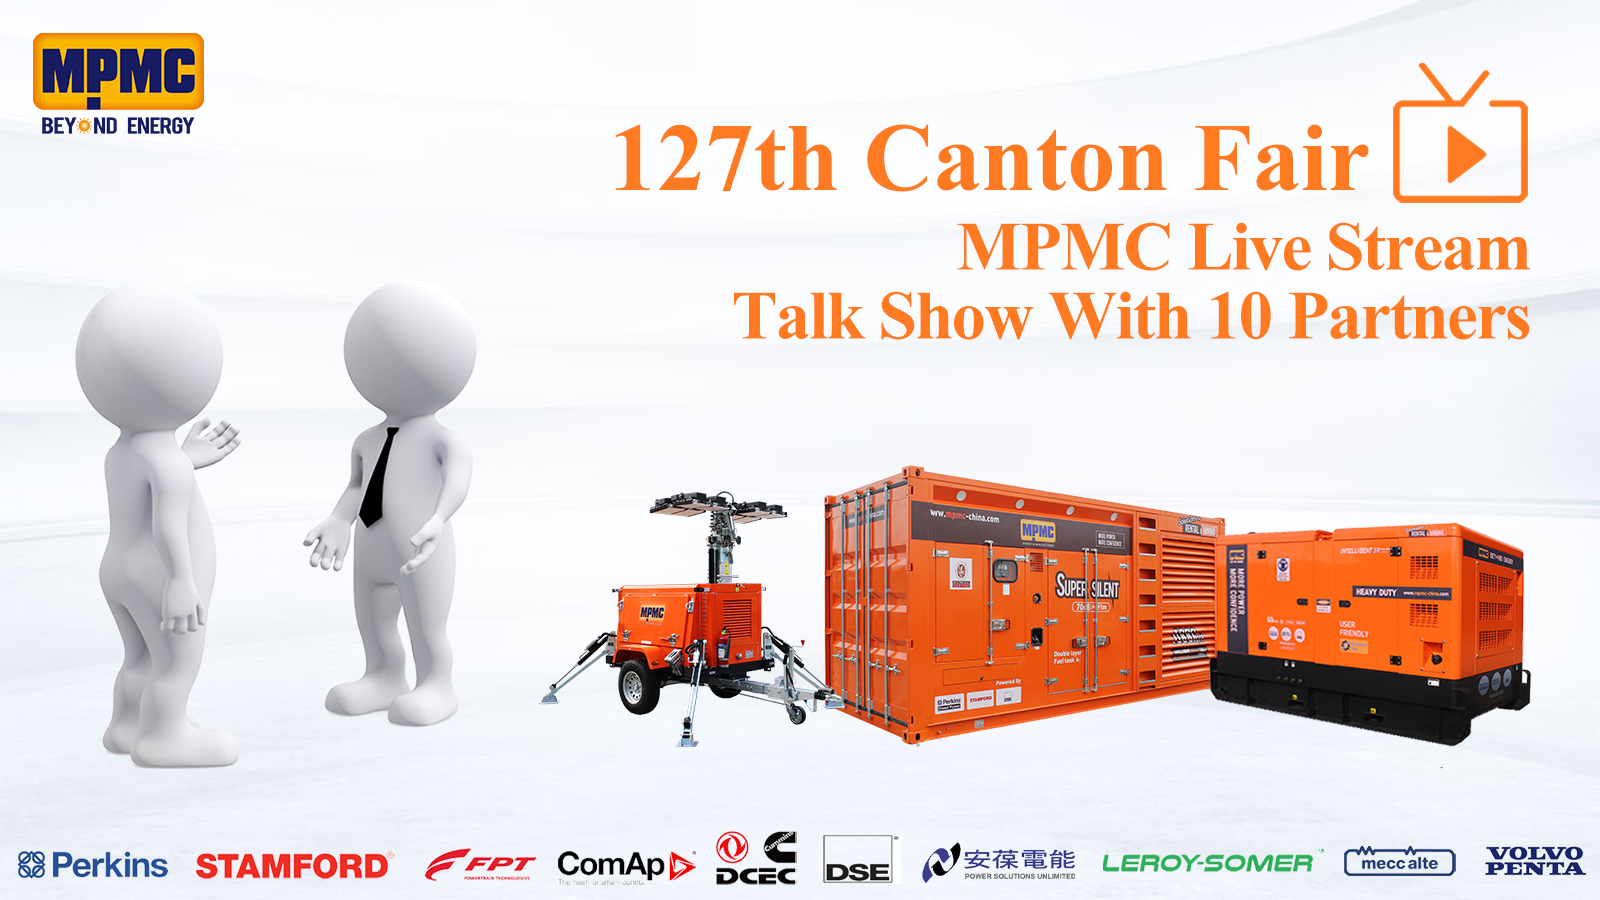 Sailing into a brand new era - MPMC live streams succeeded in Canton Fair 2020